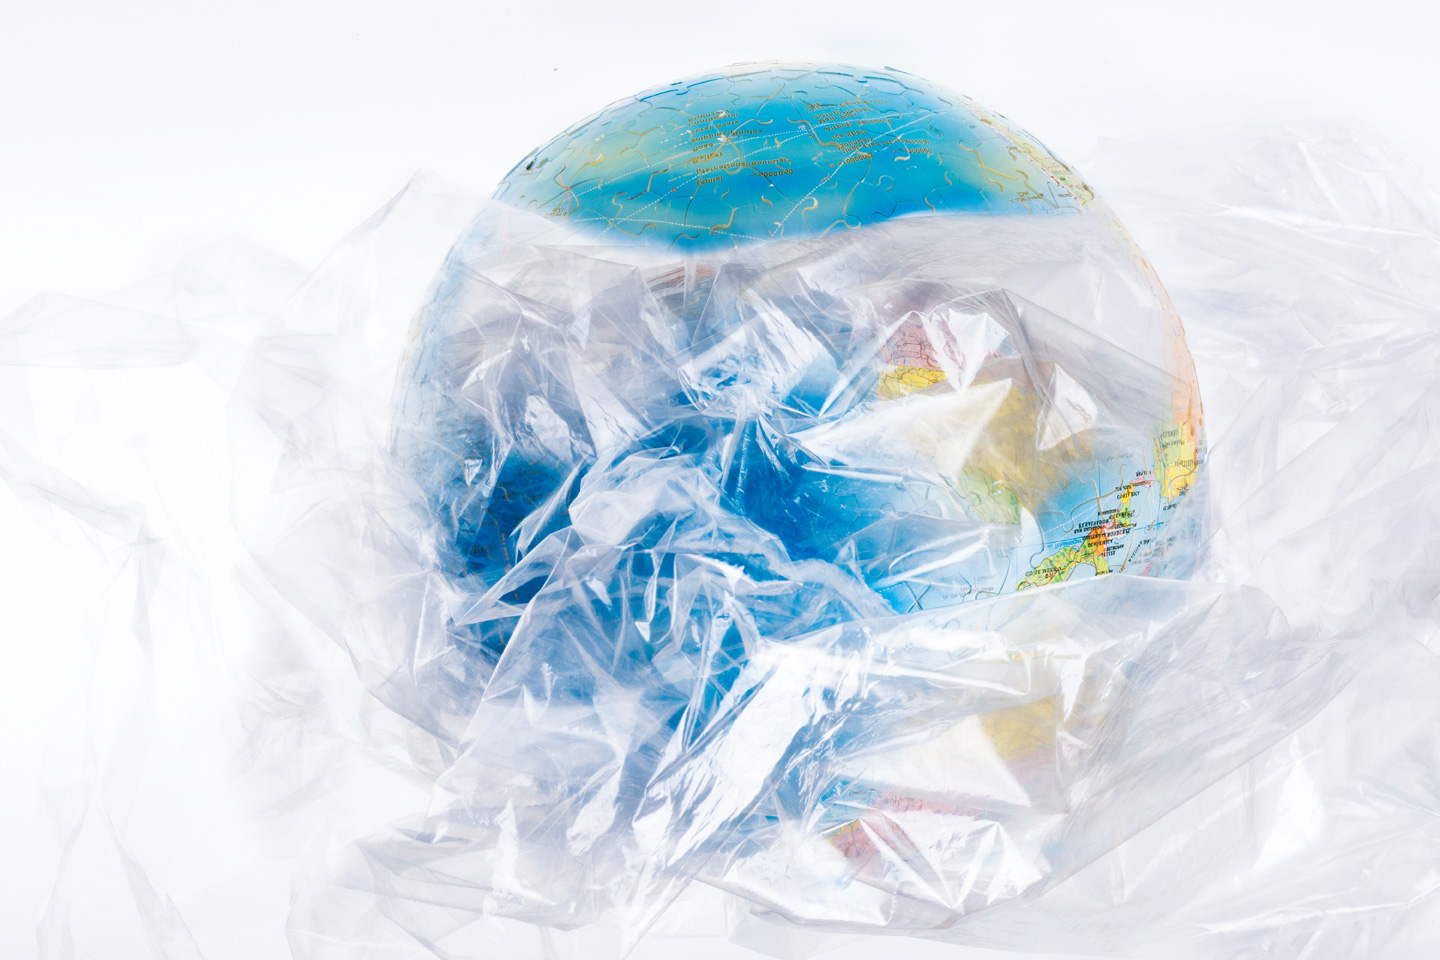 ESA_plastics_reduction_initiative